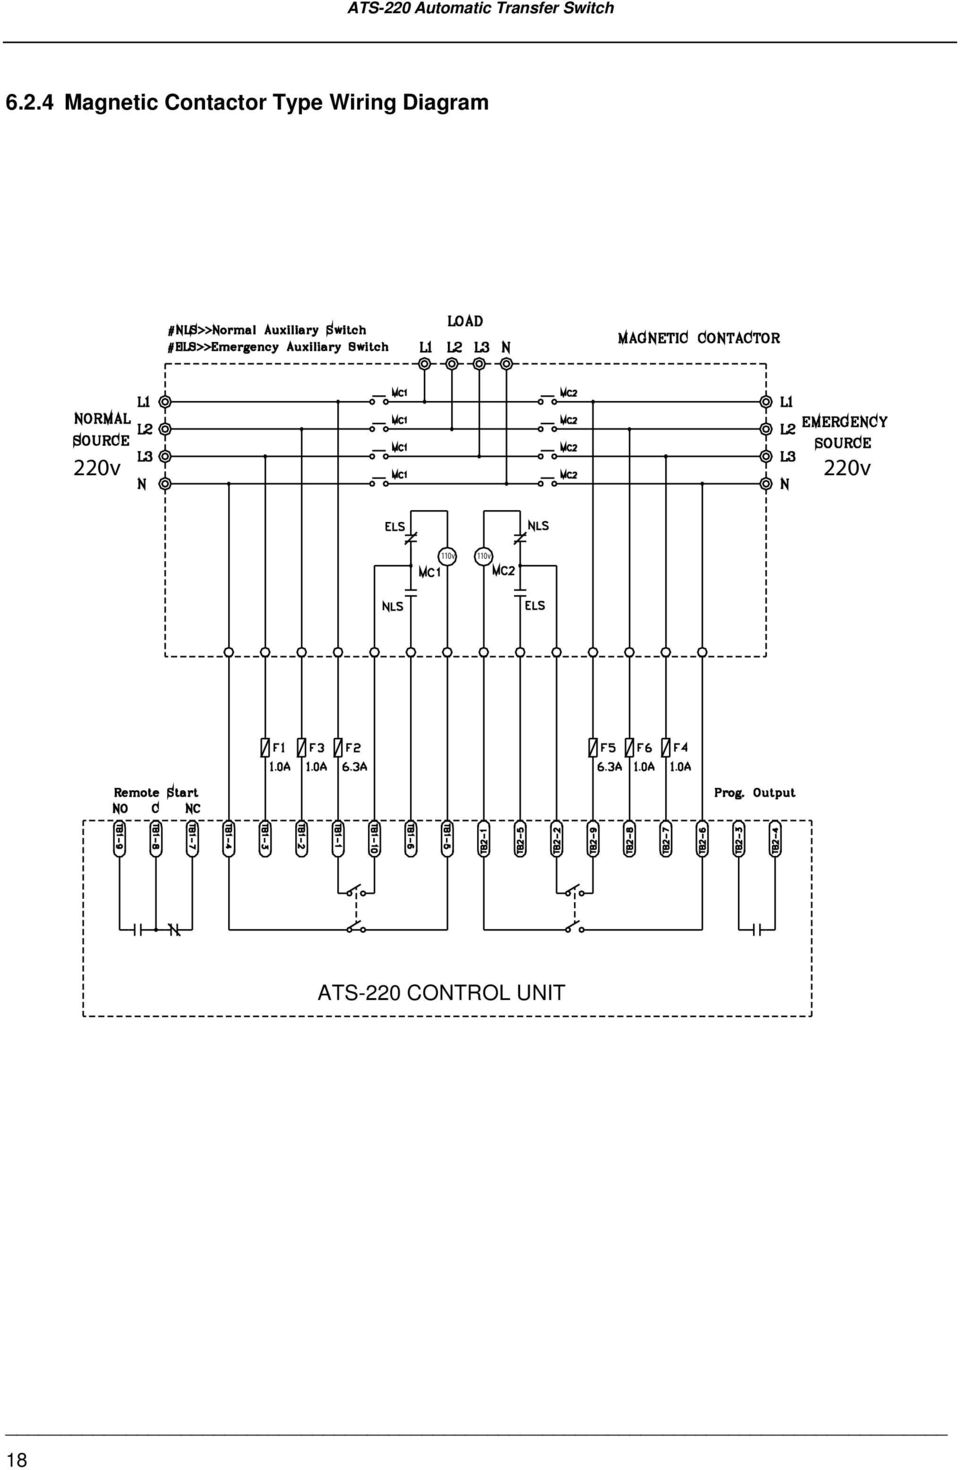 19 6.3 3P 380V Connecting Wire Diagram MCCB Type Wiring Diagram MOTOR  Normal Phase N Emergency Phase N ATS-220 CONTROL UNIT 19